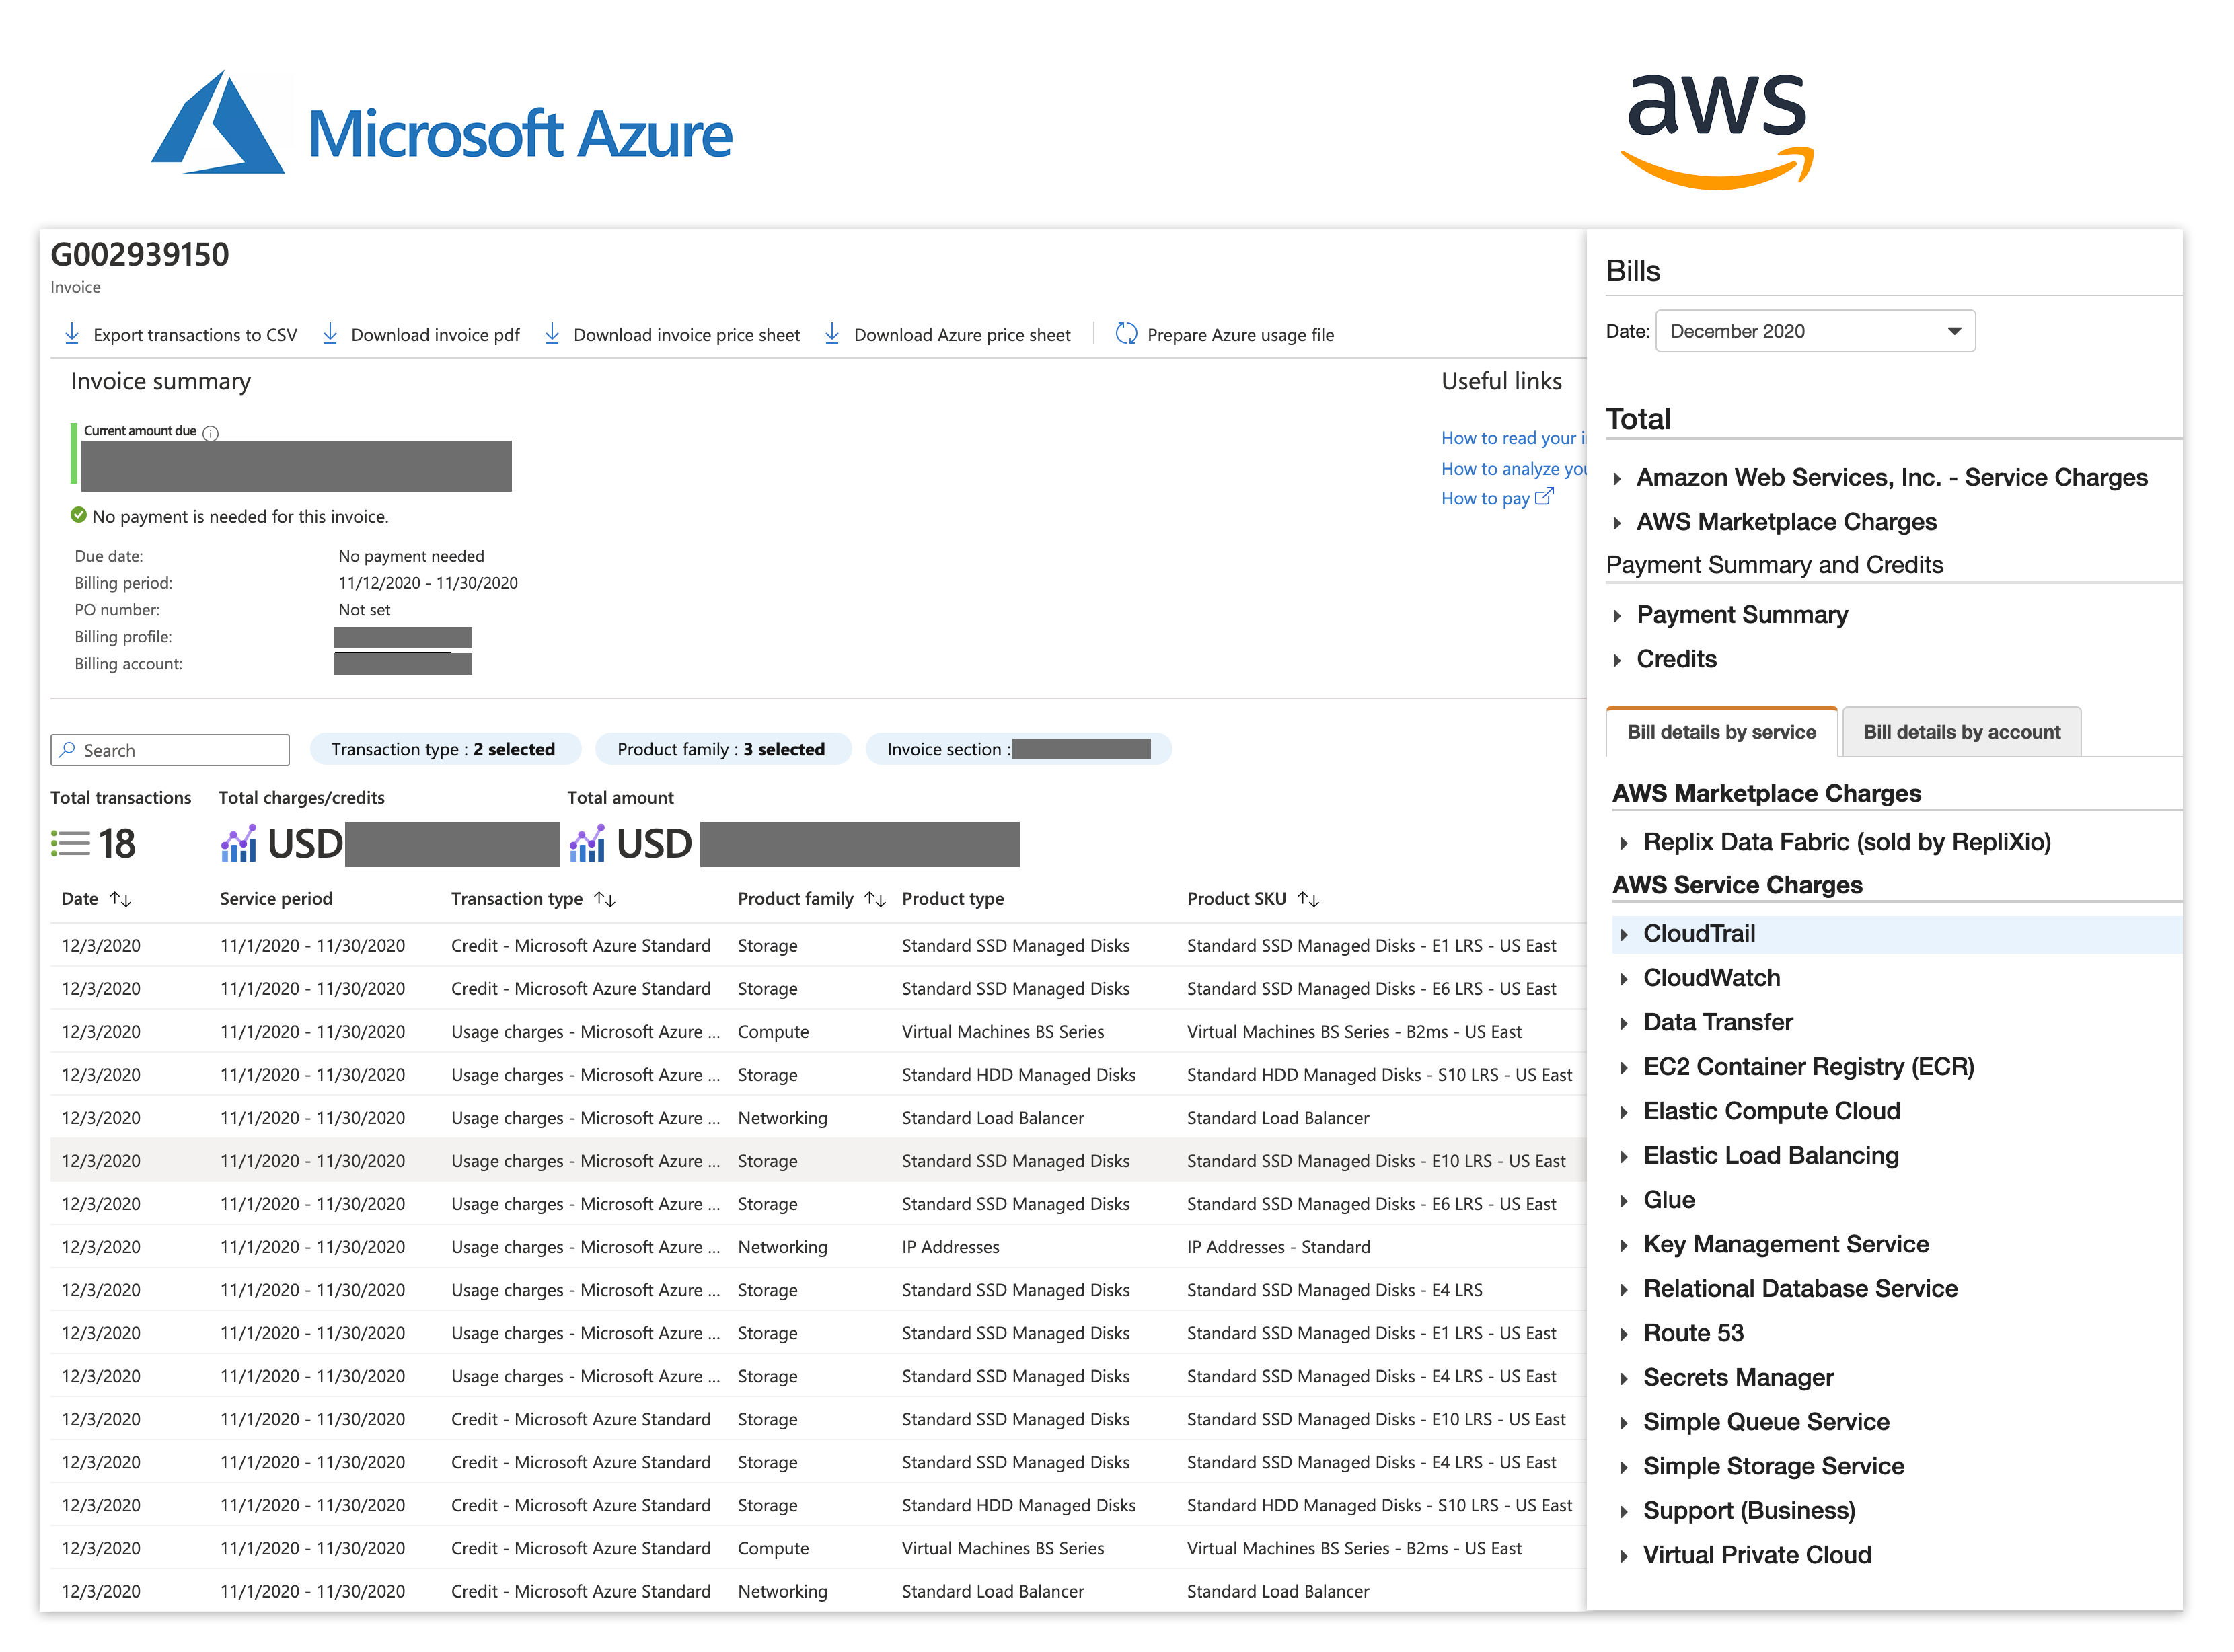 Azure vs. AWS cloud bills